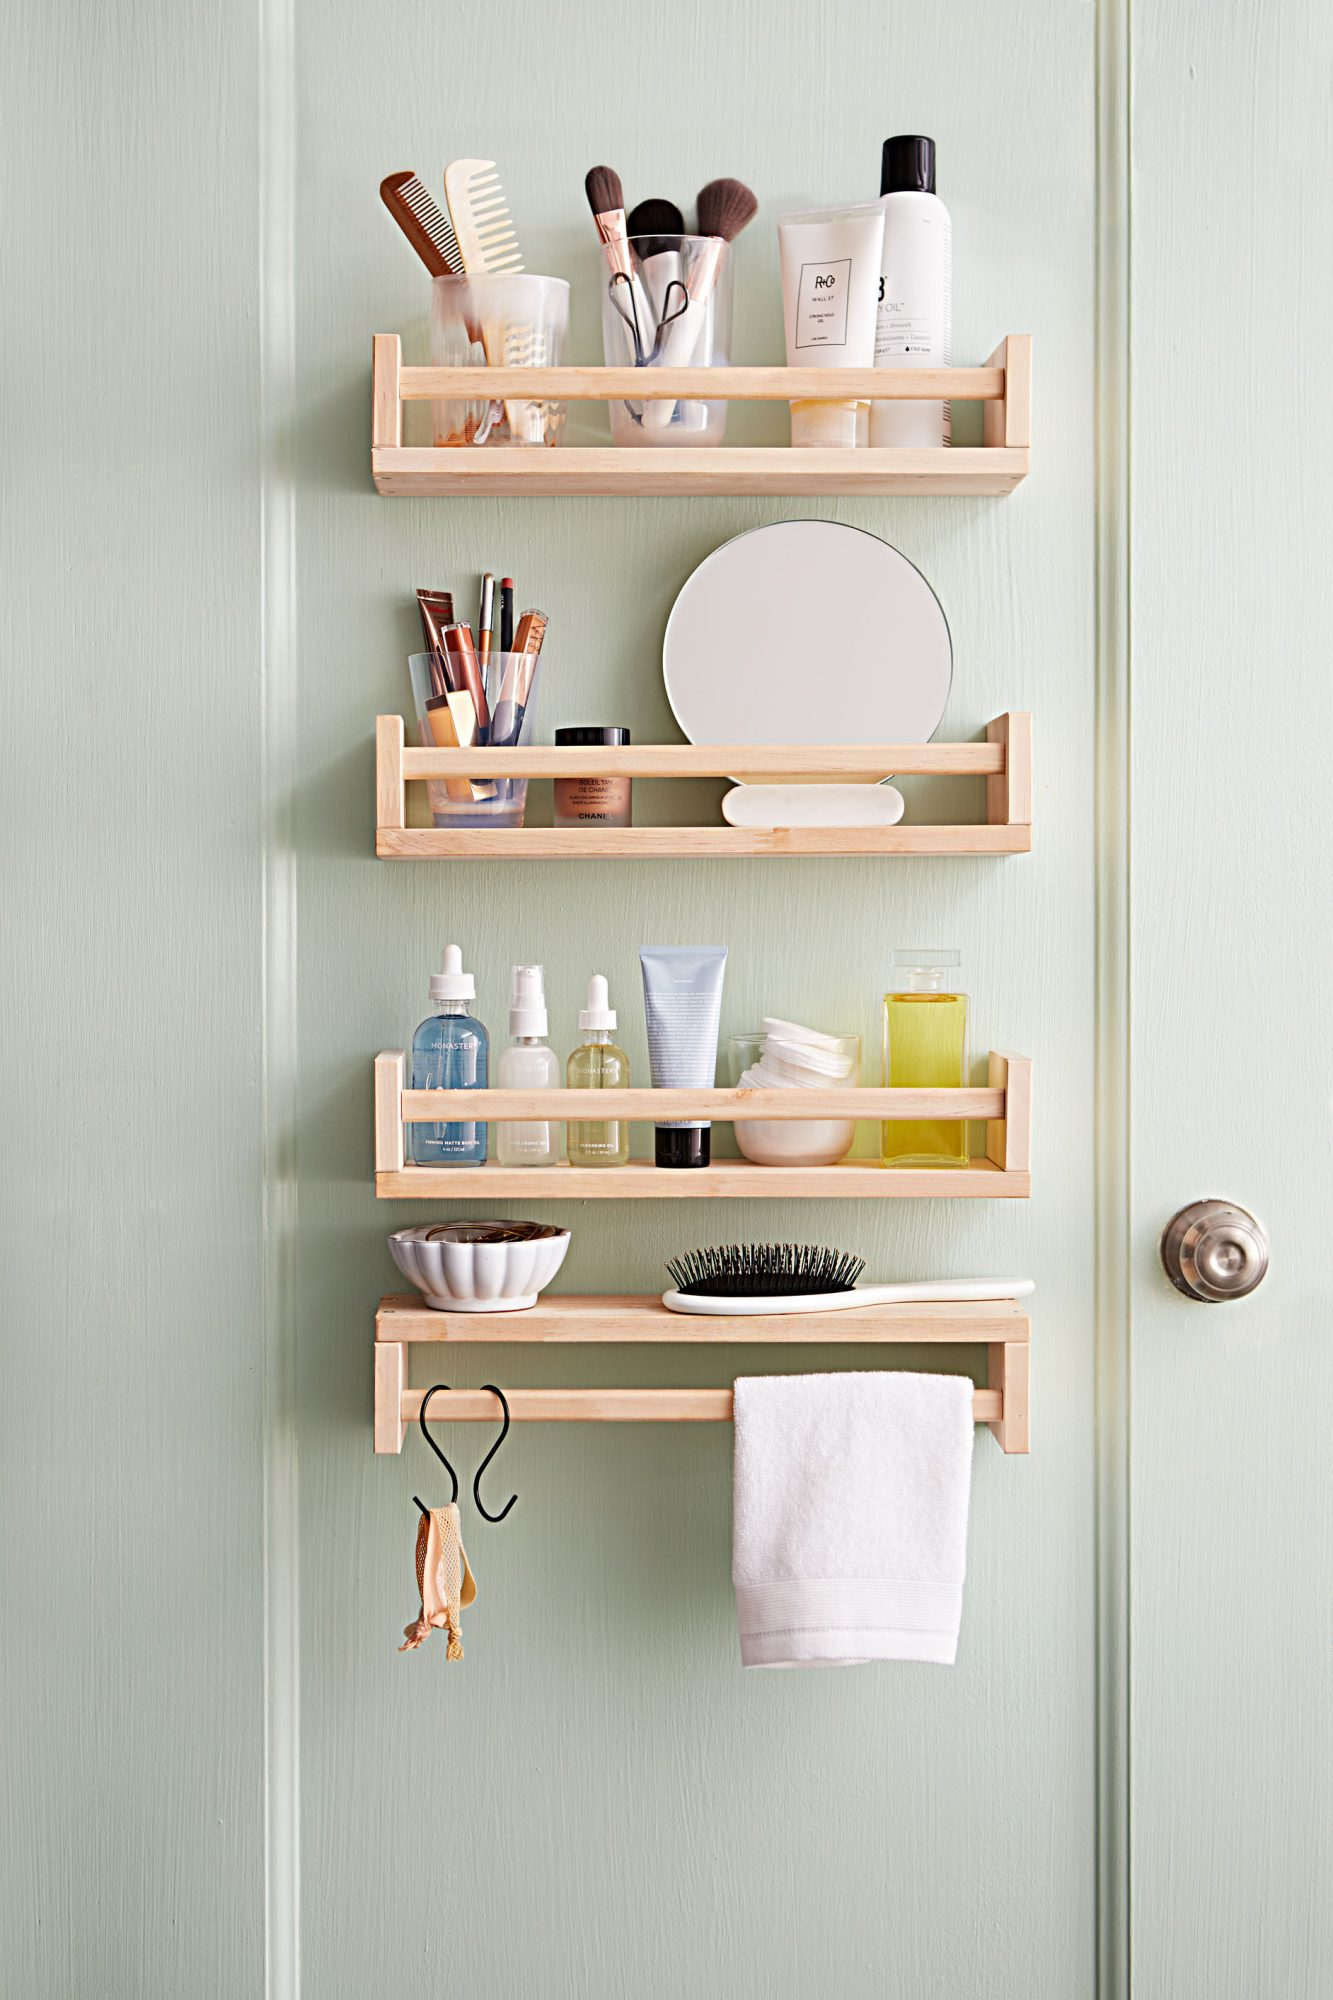 Take a rustic approach to stacked shelving by repurposing spice racks. You can also create extra space by flipping one upside-down for a bonus towel rack.  Shop Now: IKEA Wood Spice Rack, $49.99, amazon.com.